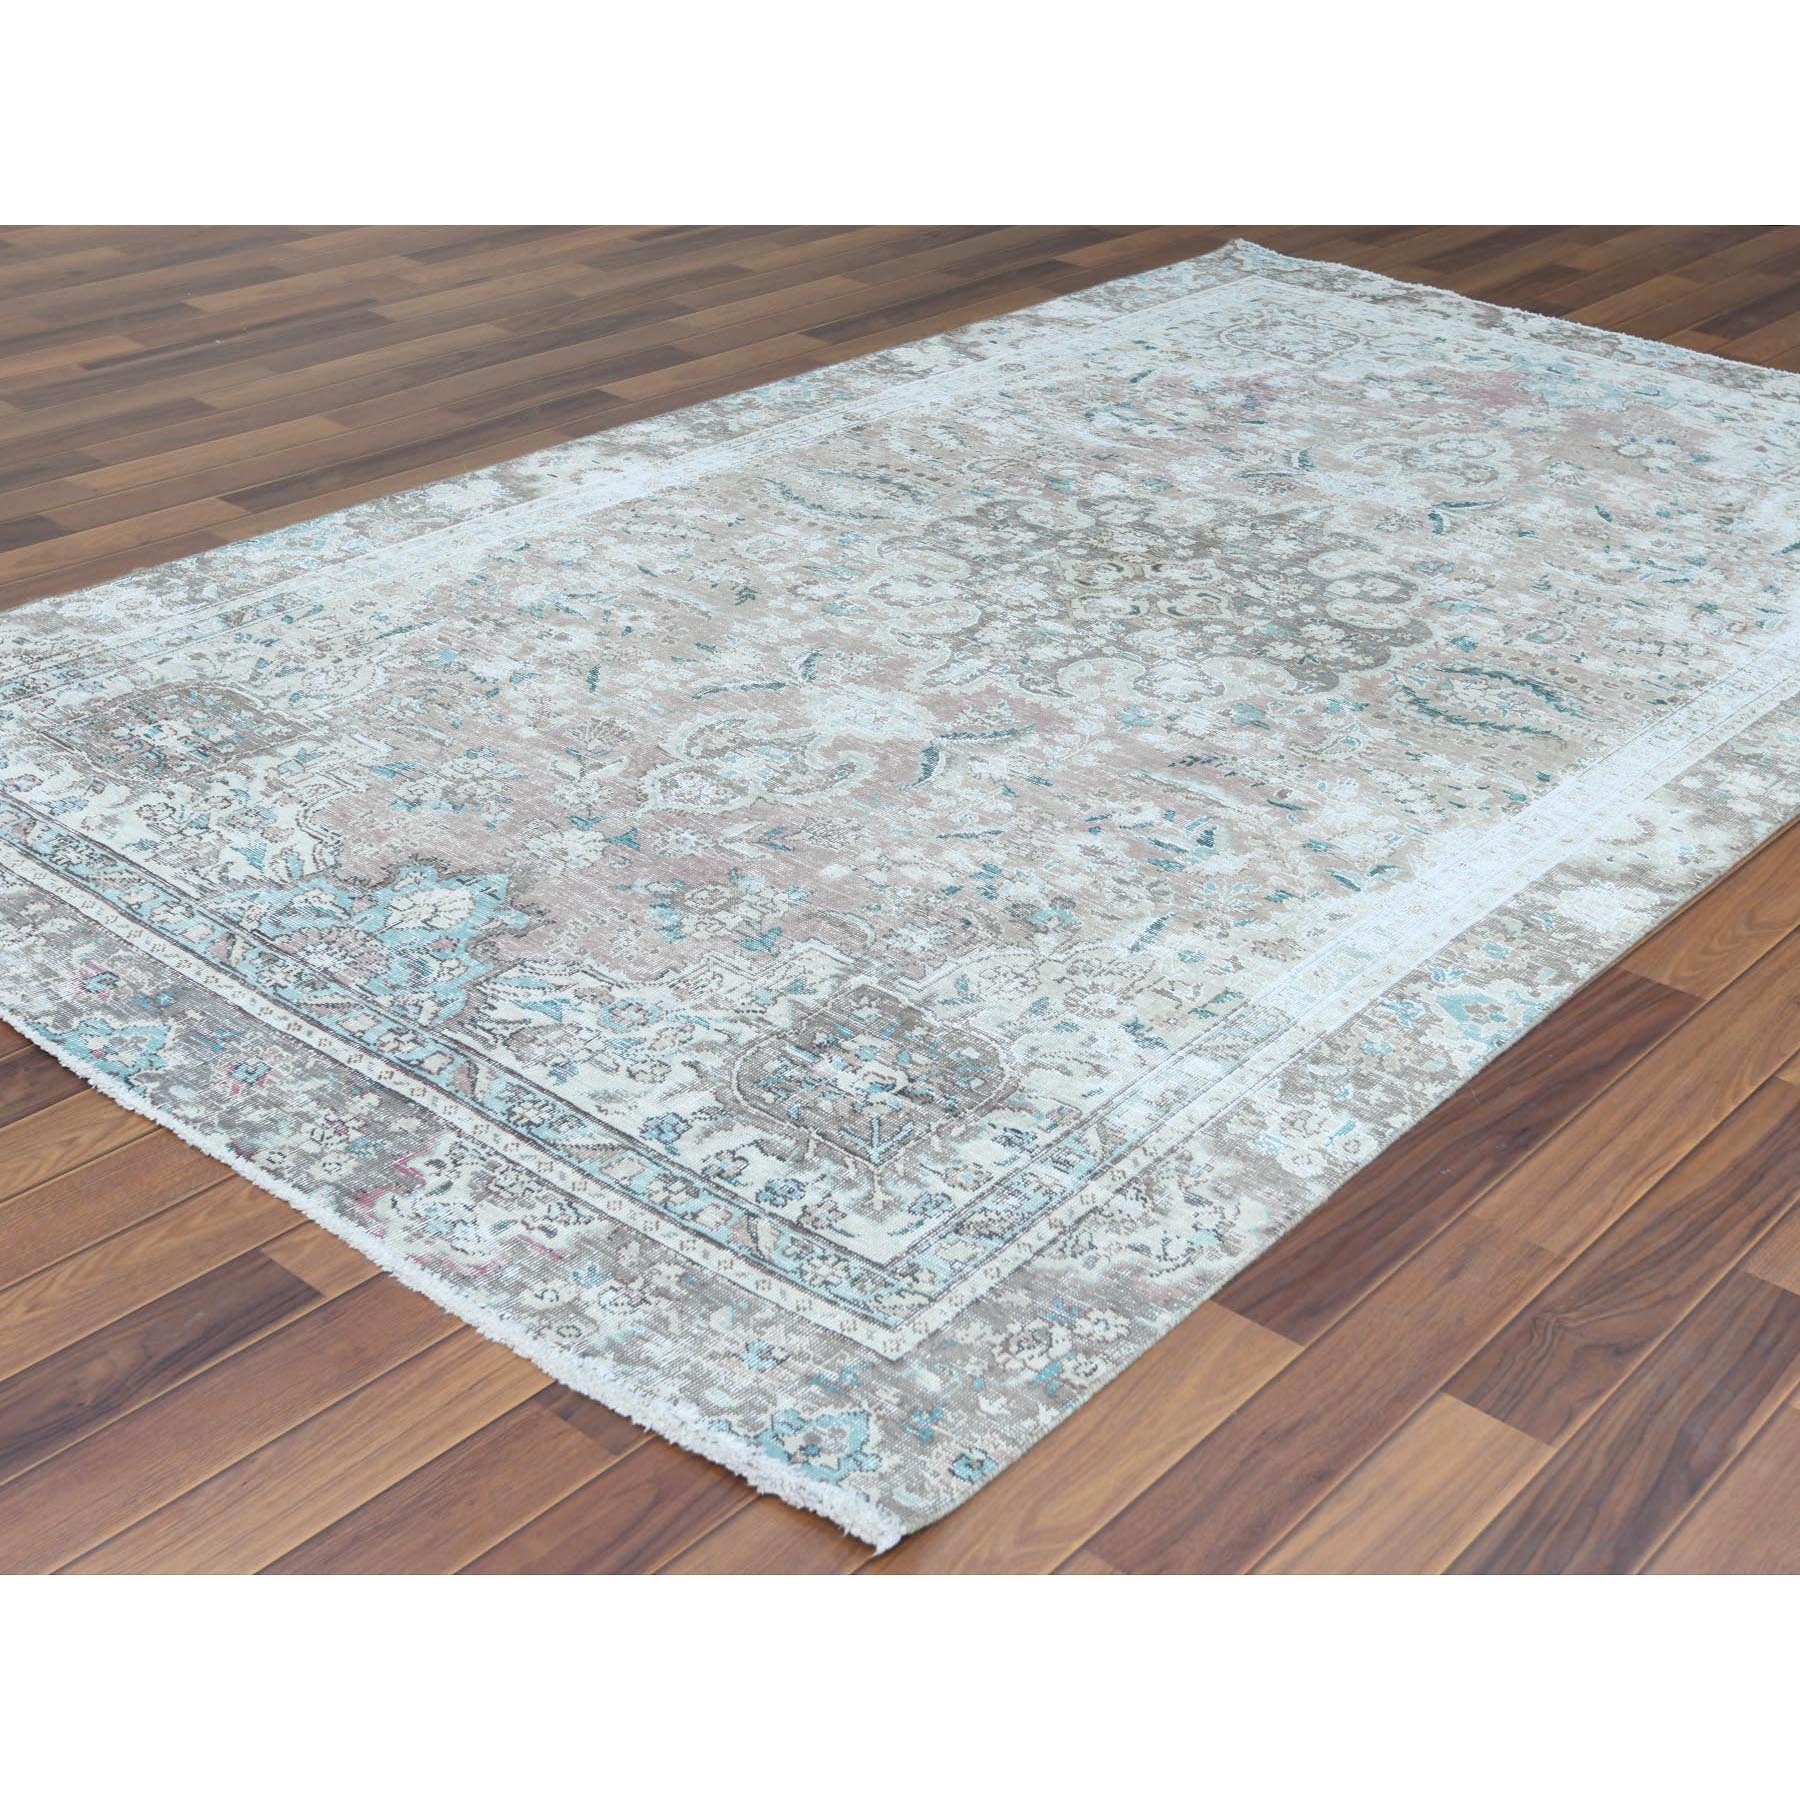 """5'10""""x9'5"""" Red Clean Pure Wool Bohemian Worn Down Vintage Look Persian Tabriz Medallion Design Hand Knotted Oriental Rug"""